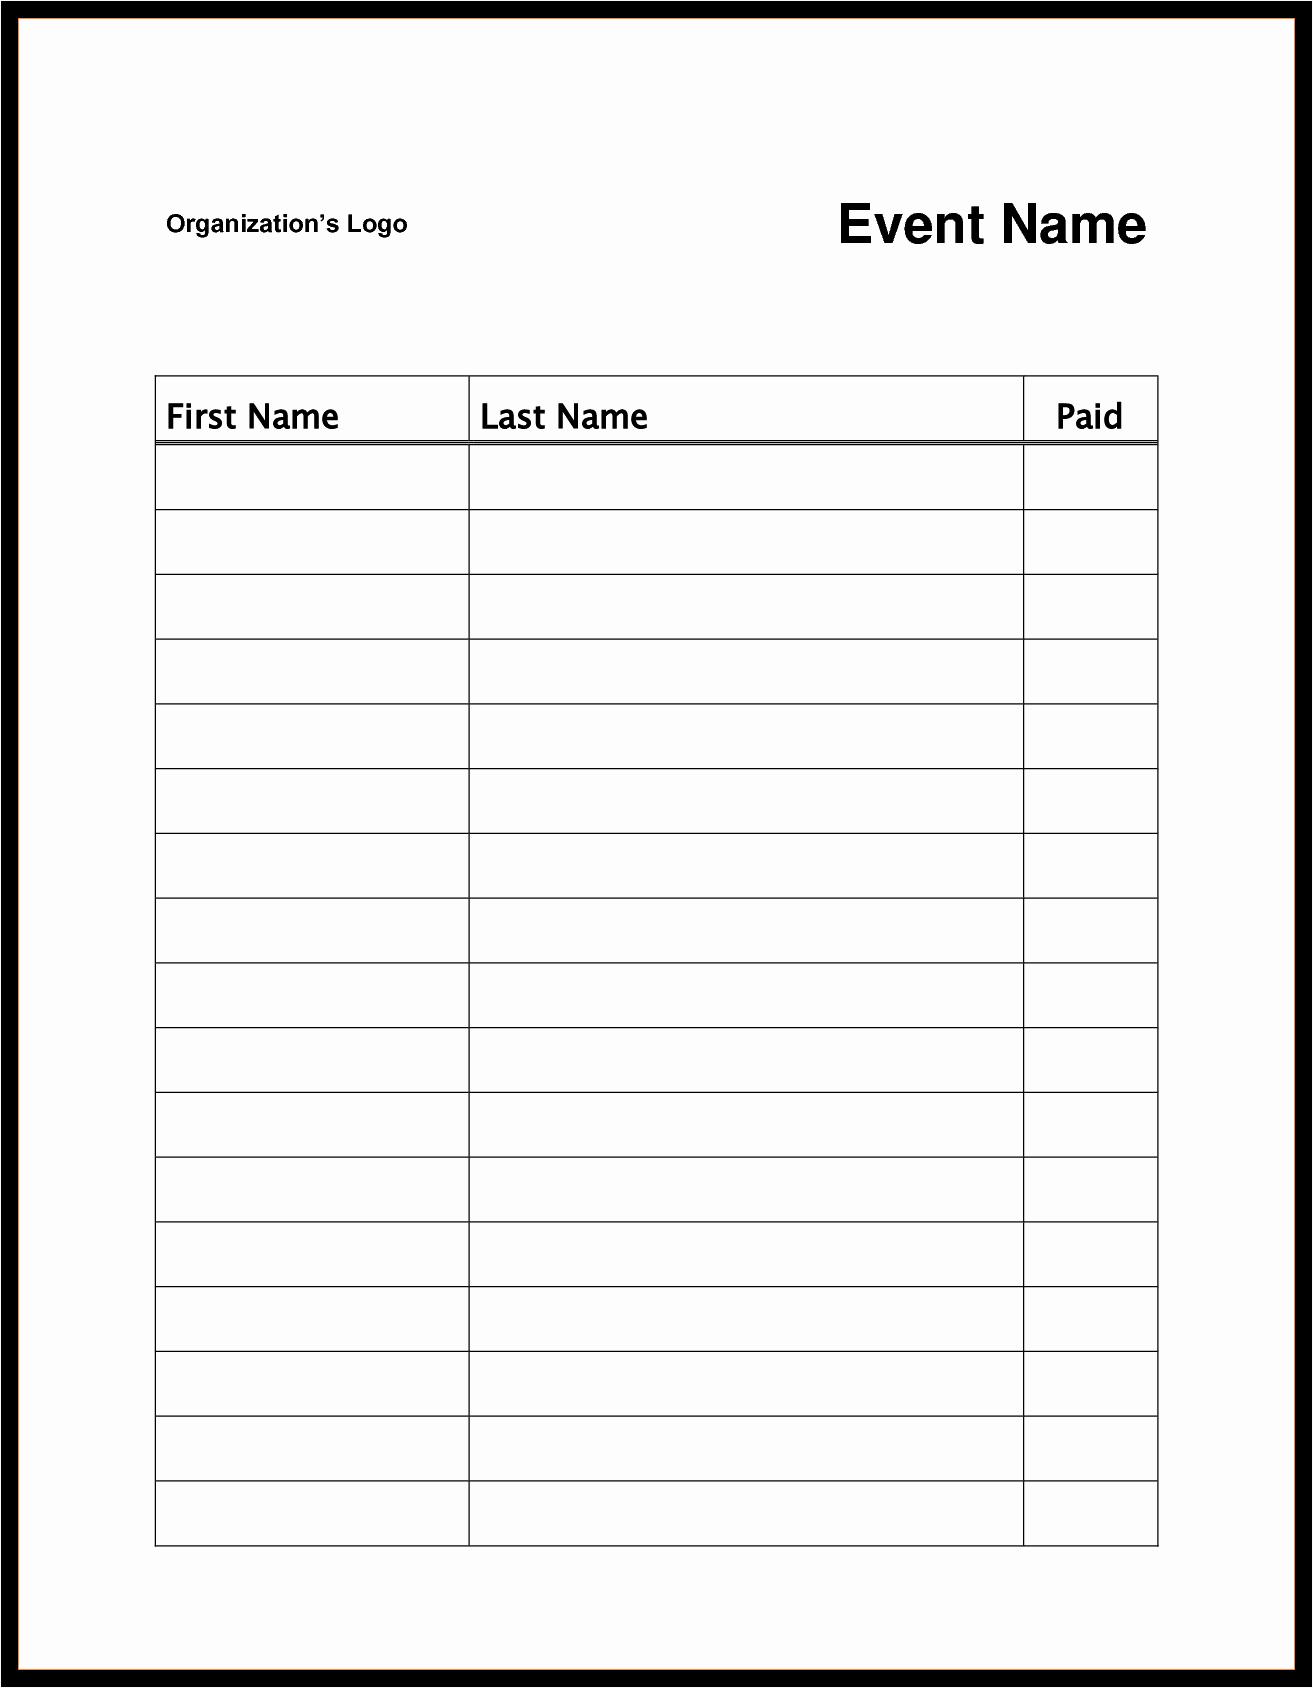 Sign Up Sheet Template Pages Portablegasgrillweber